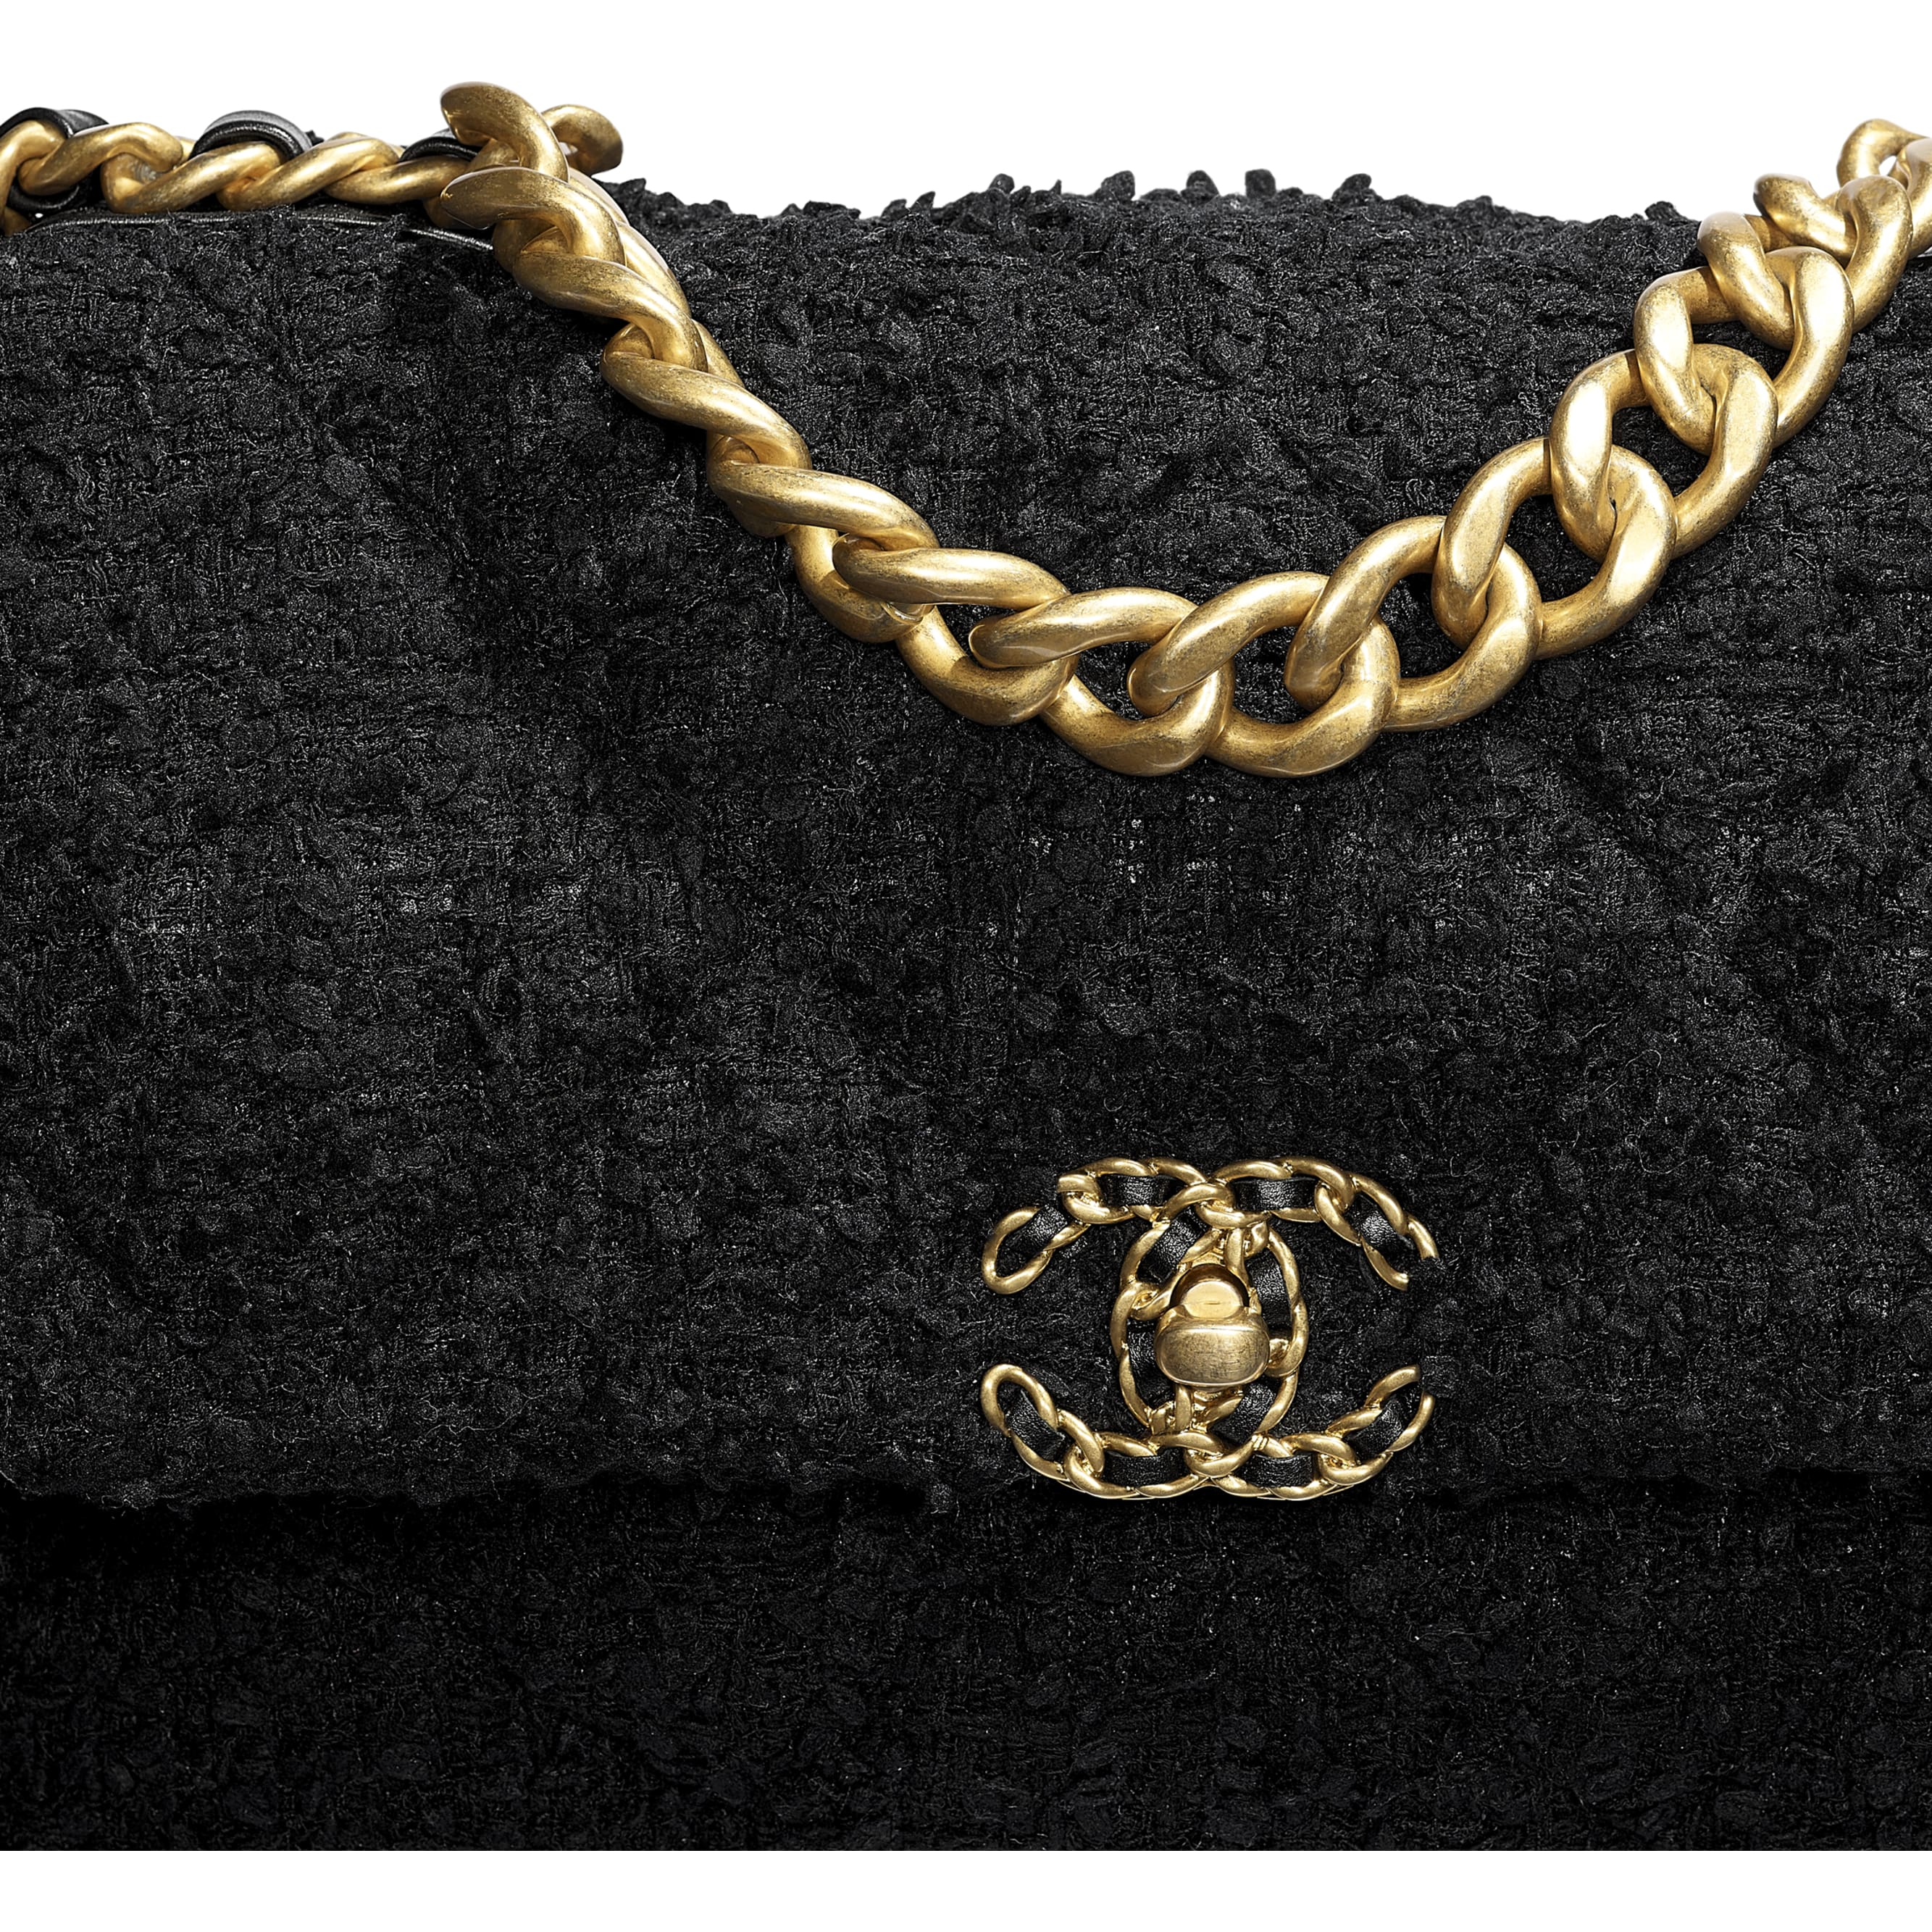 CHANEL 19 Large Flap Bag - Black - Tweed, Gold-Tone, Silver-Tone & Ruthenium-Finish Metal - CHANEL - Extra view - see standard sized version